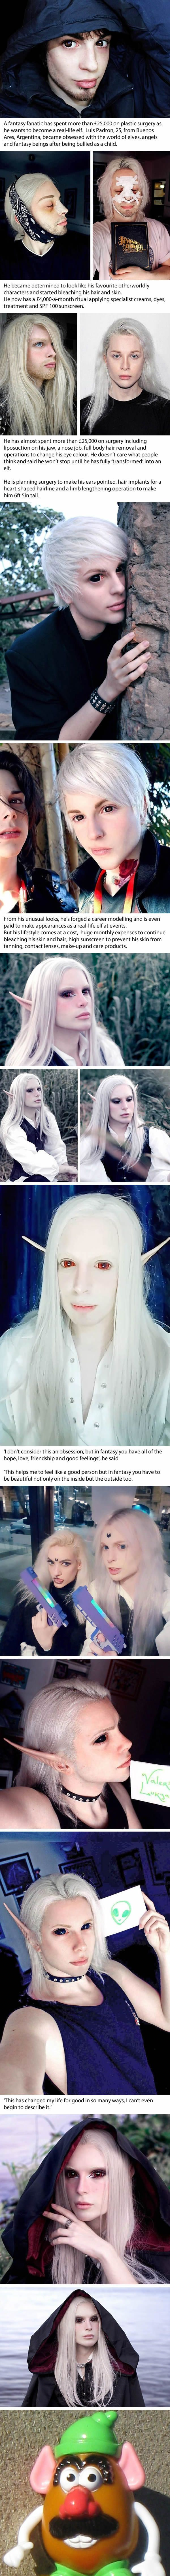 Fantasy fanatic splashes k on plastic surgery to look like an elf